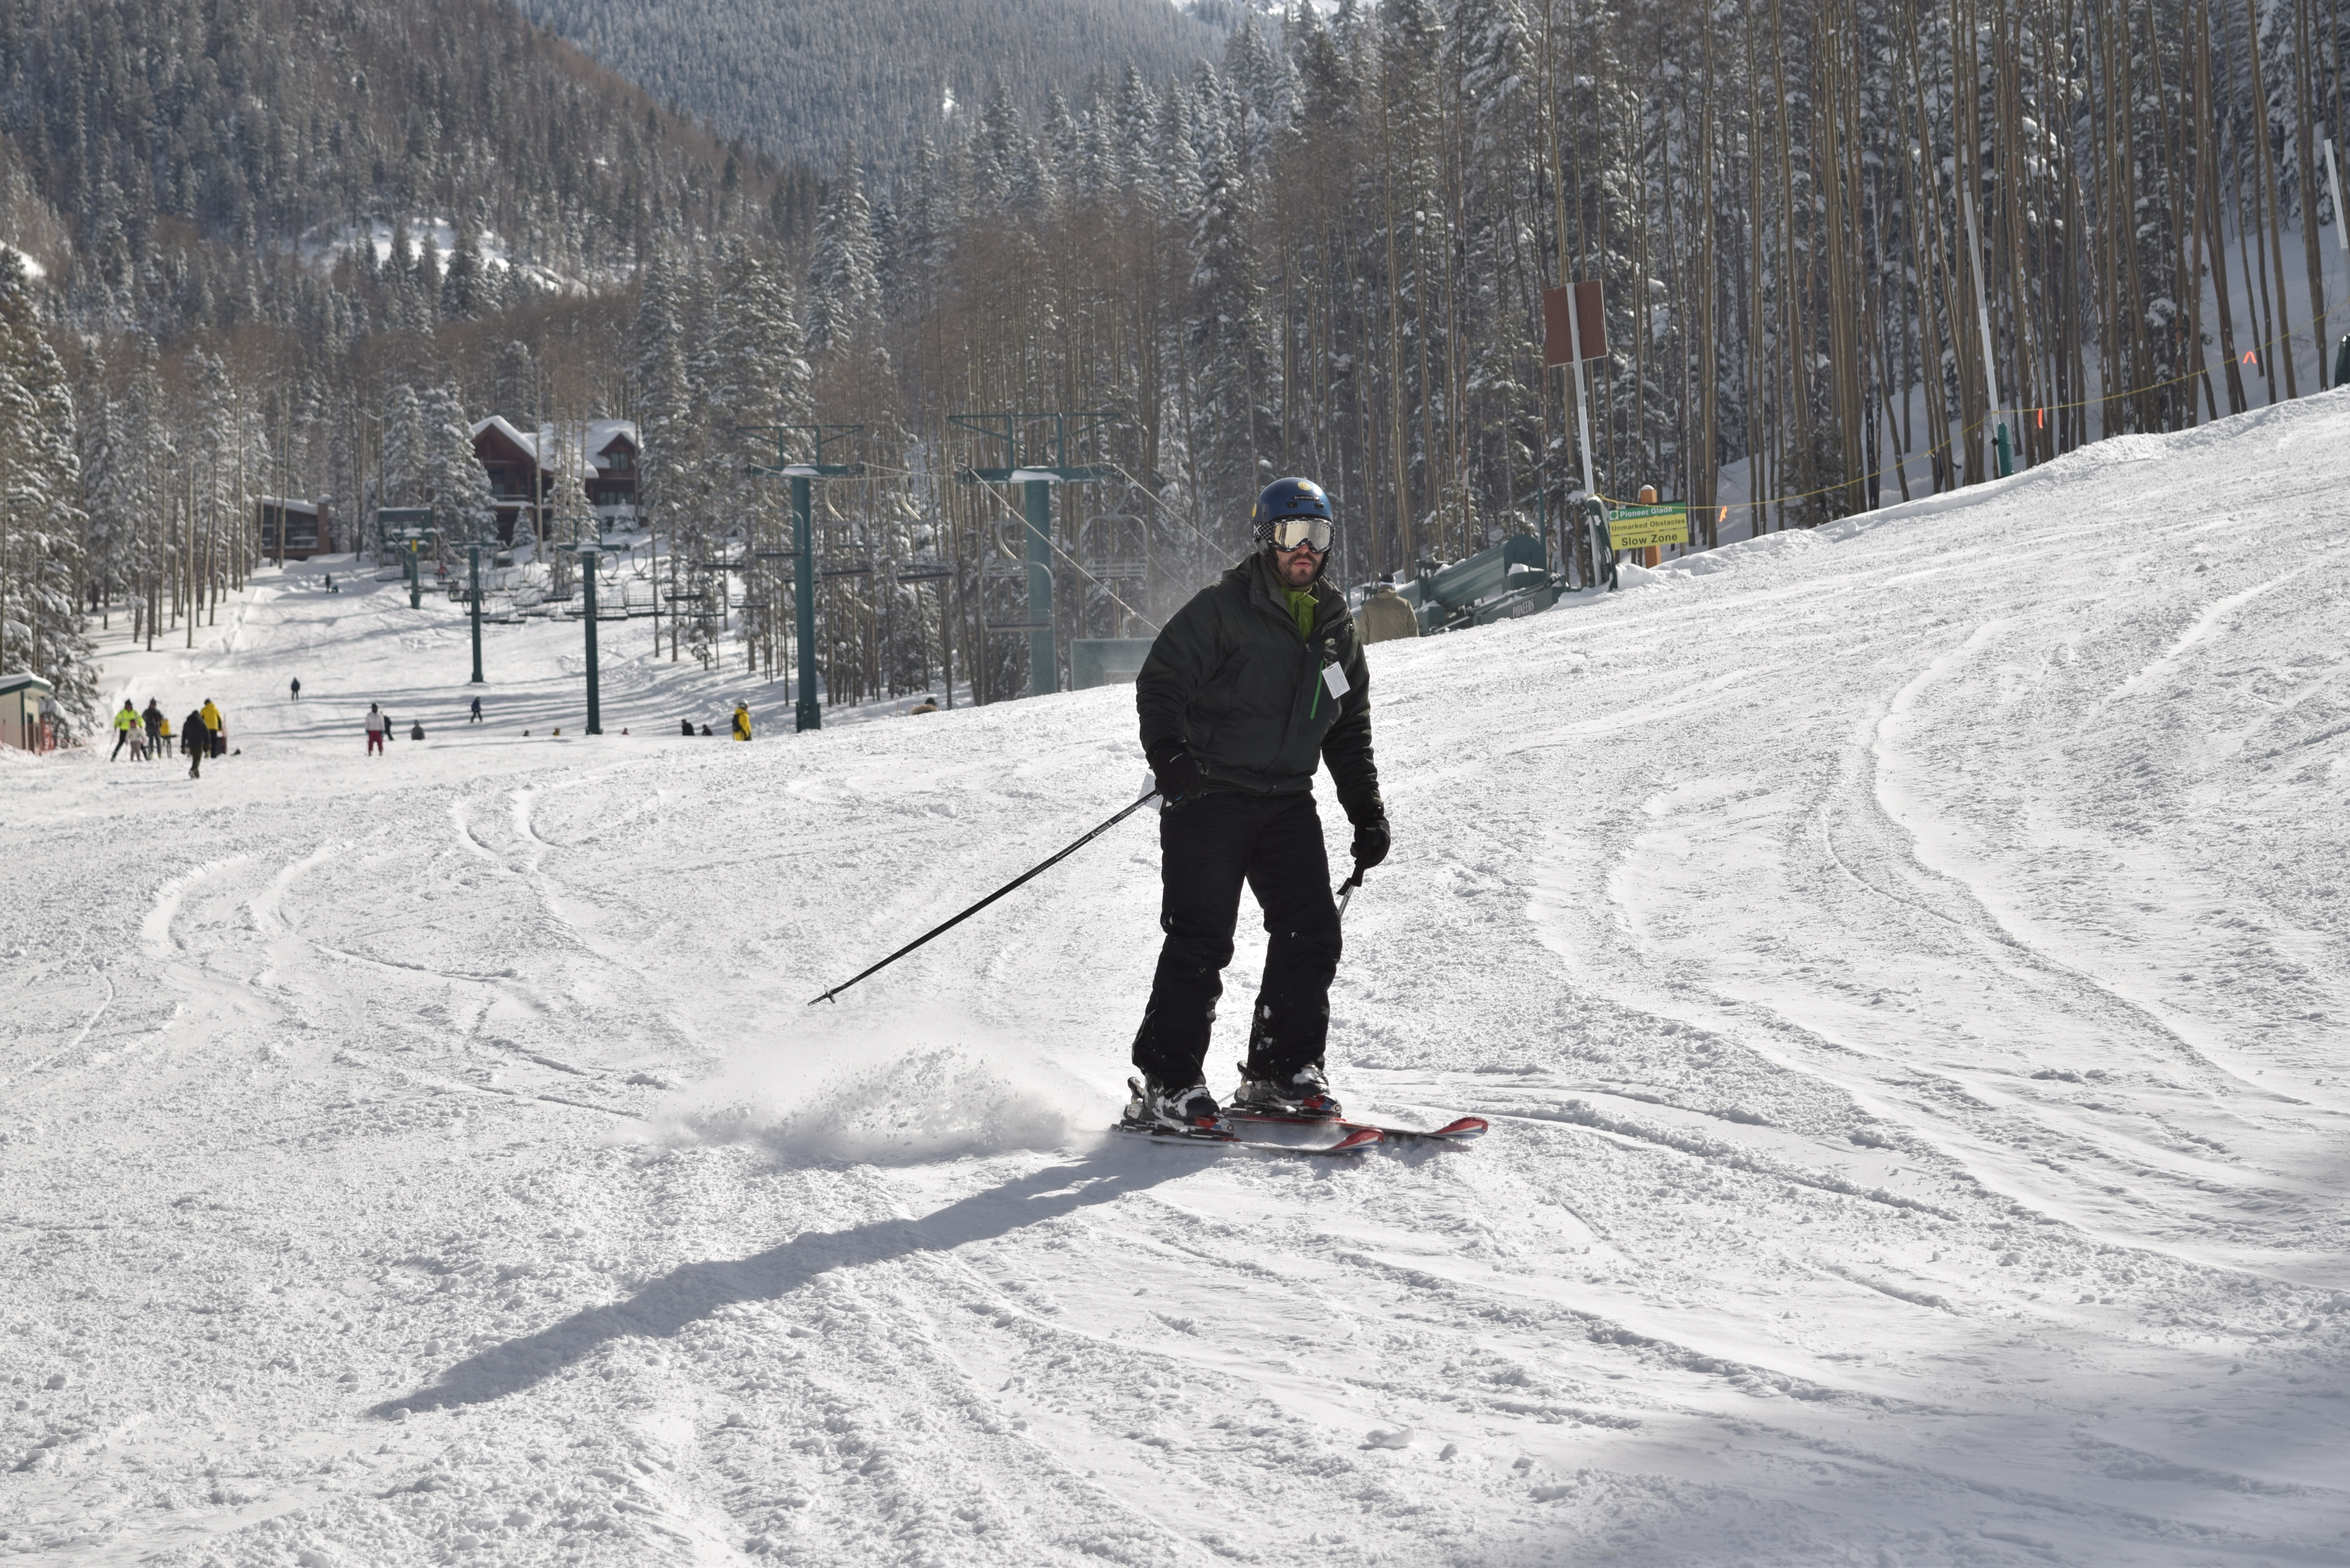 Skier with helmet and goggles carving in from off the slope, chairlift poles, lodge, and snowy forest in the background